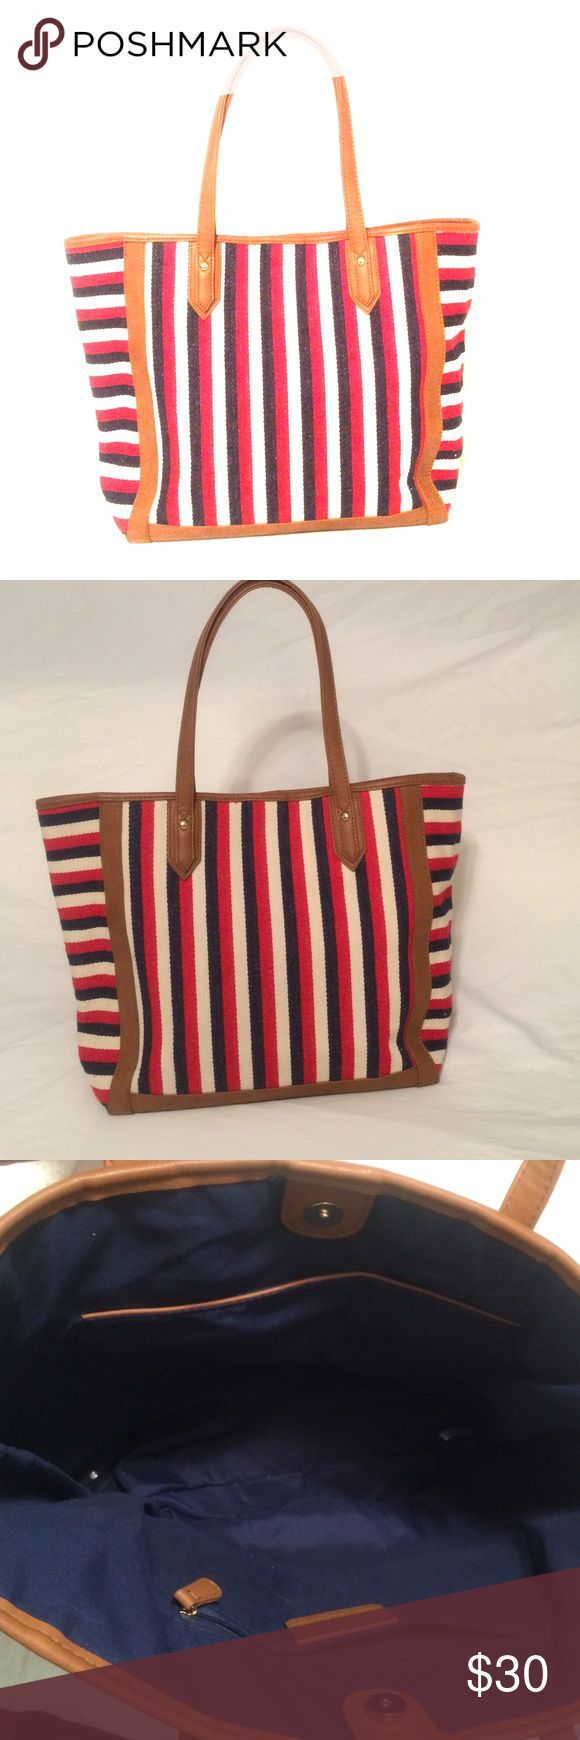 🚛MOVING SALE🚛Striped Shoulder Bag Striped red white and blue with brown outlining. Super cute and in amazing condition Charming Charlie Bags Shoulder Bags